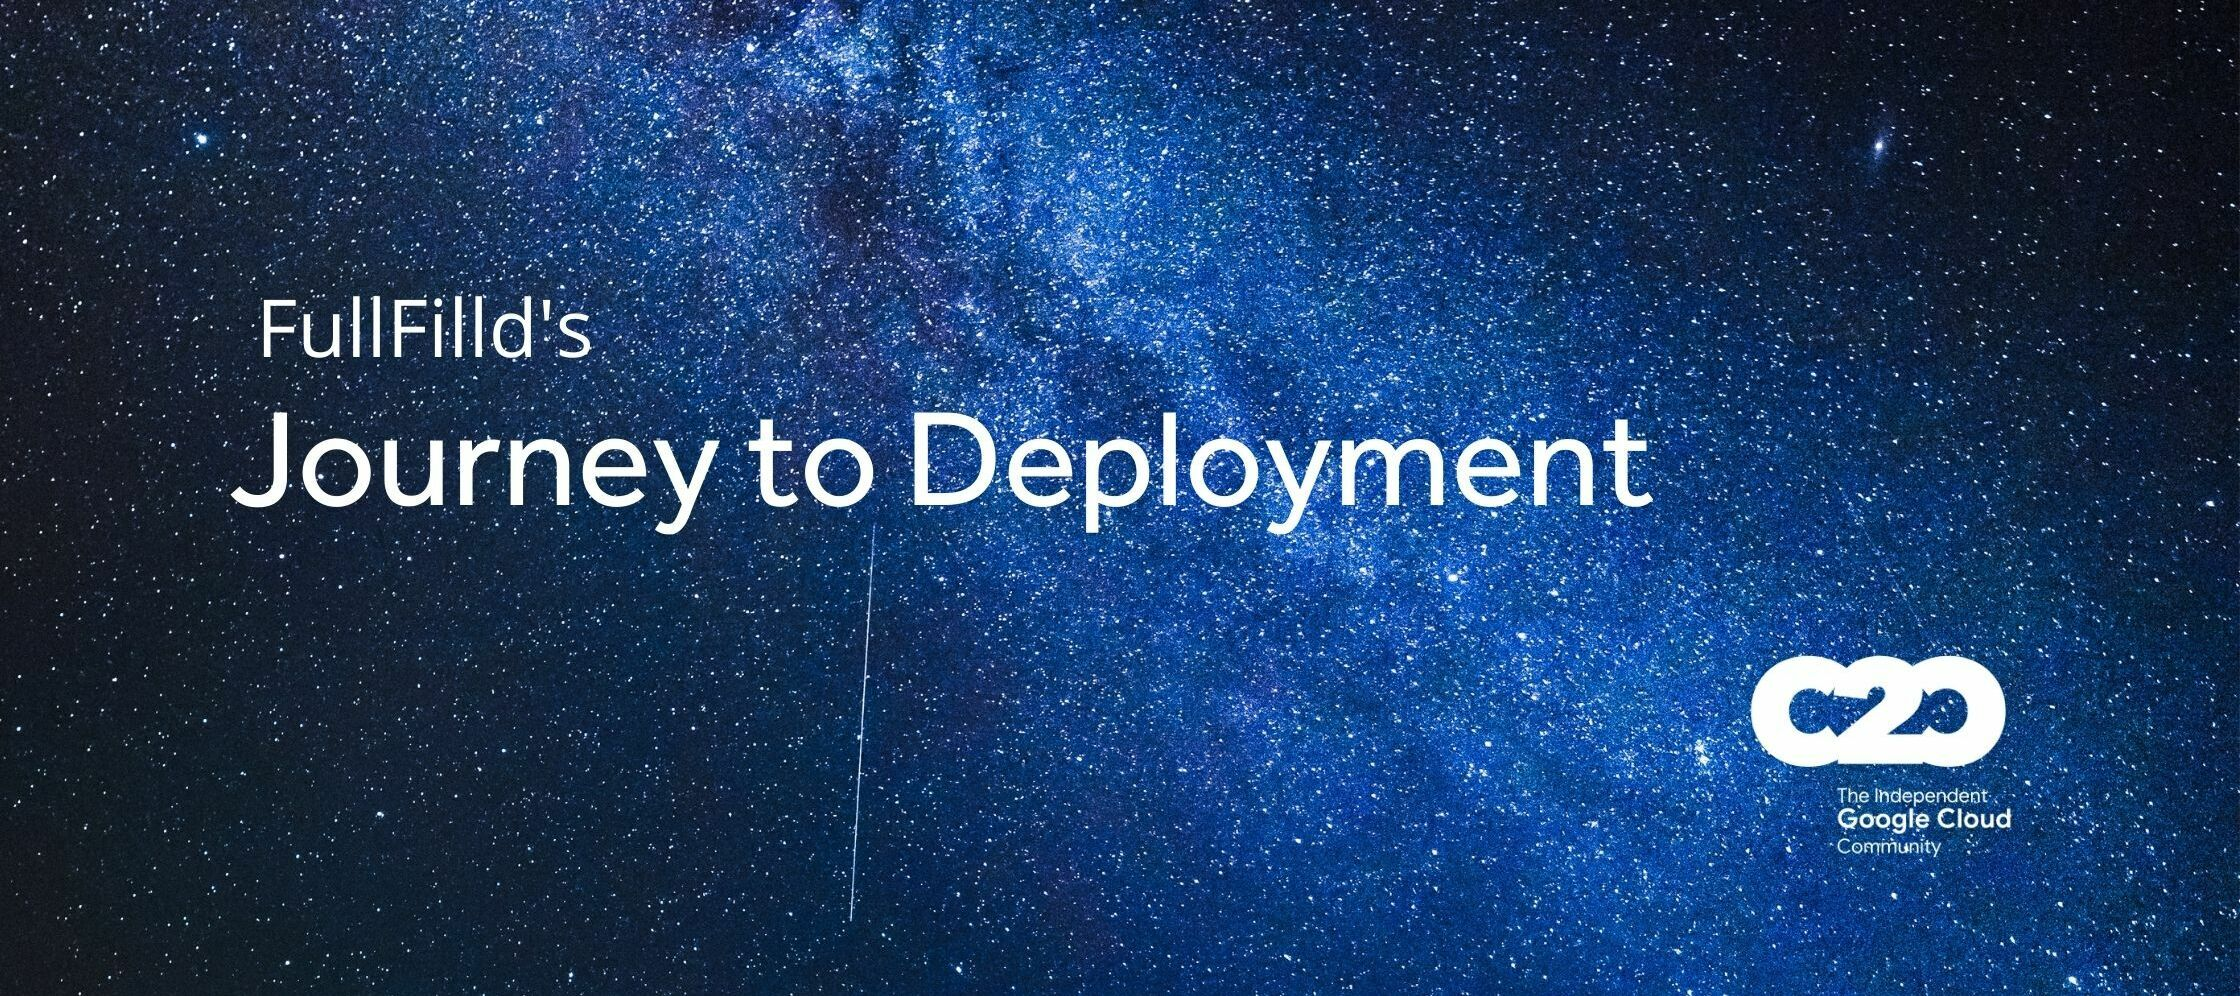 [Listen] Journey to Deployment with FullFld: How Google Cloud Microservices Make it Easier to Quickly Deploy and Scale